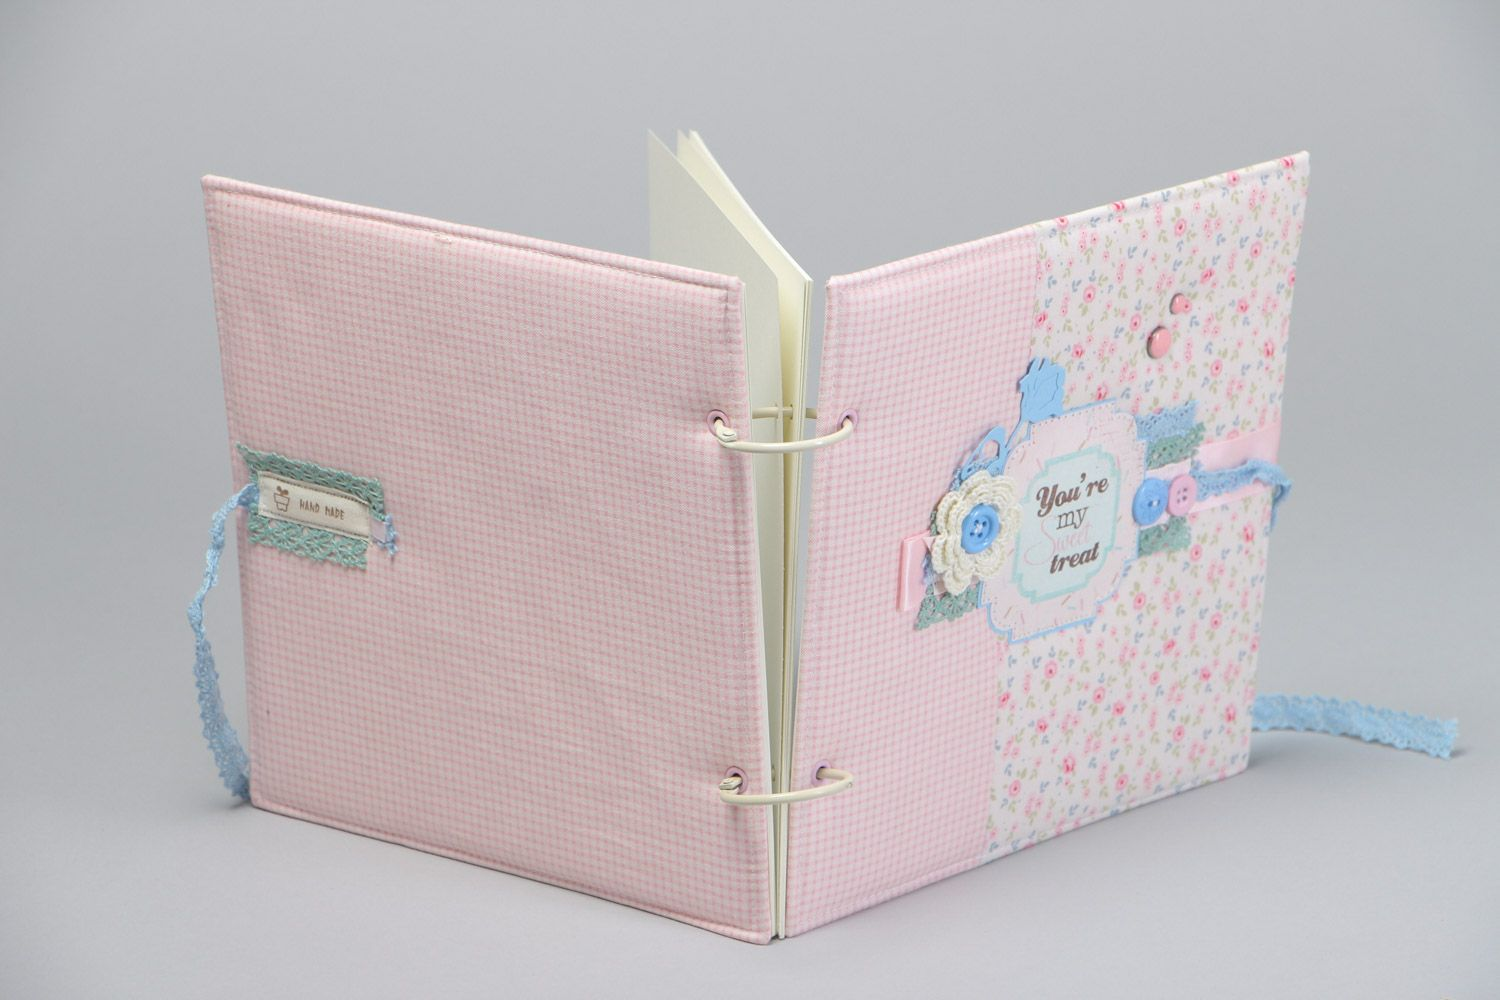 Handmade designer scrapbooking photo album for 25 pages in pink colors photo 4